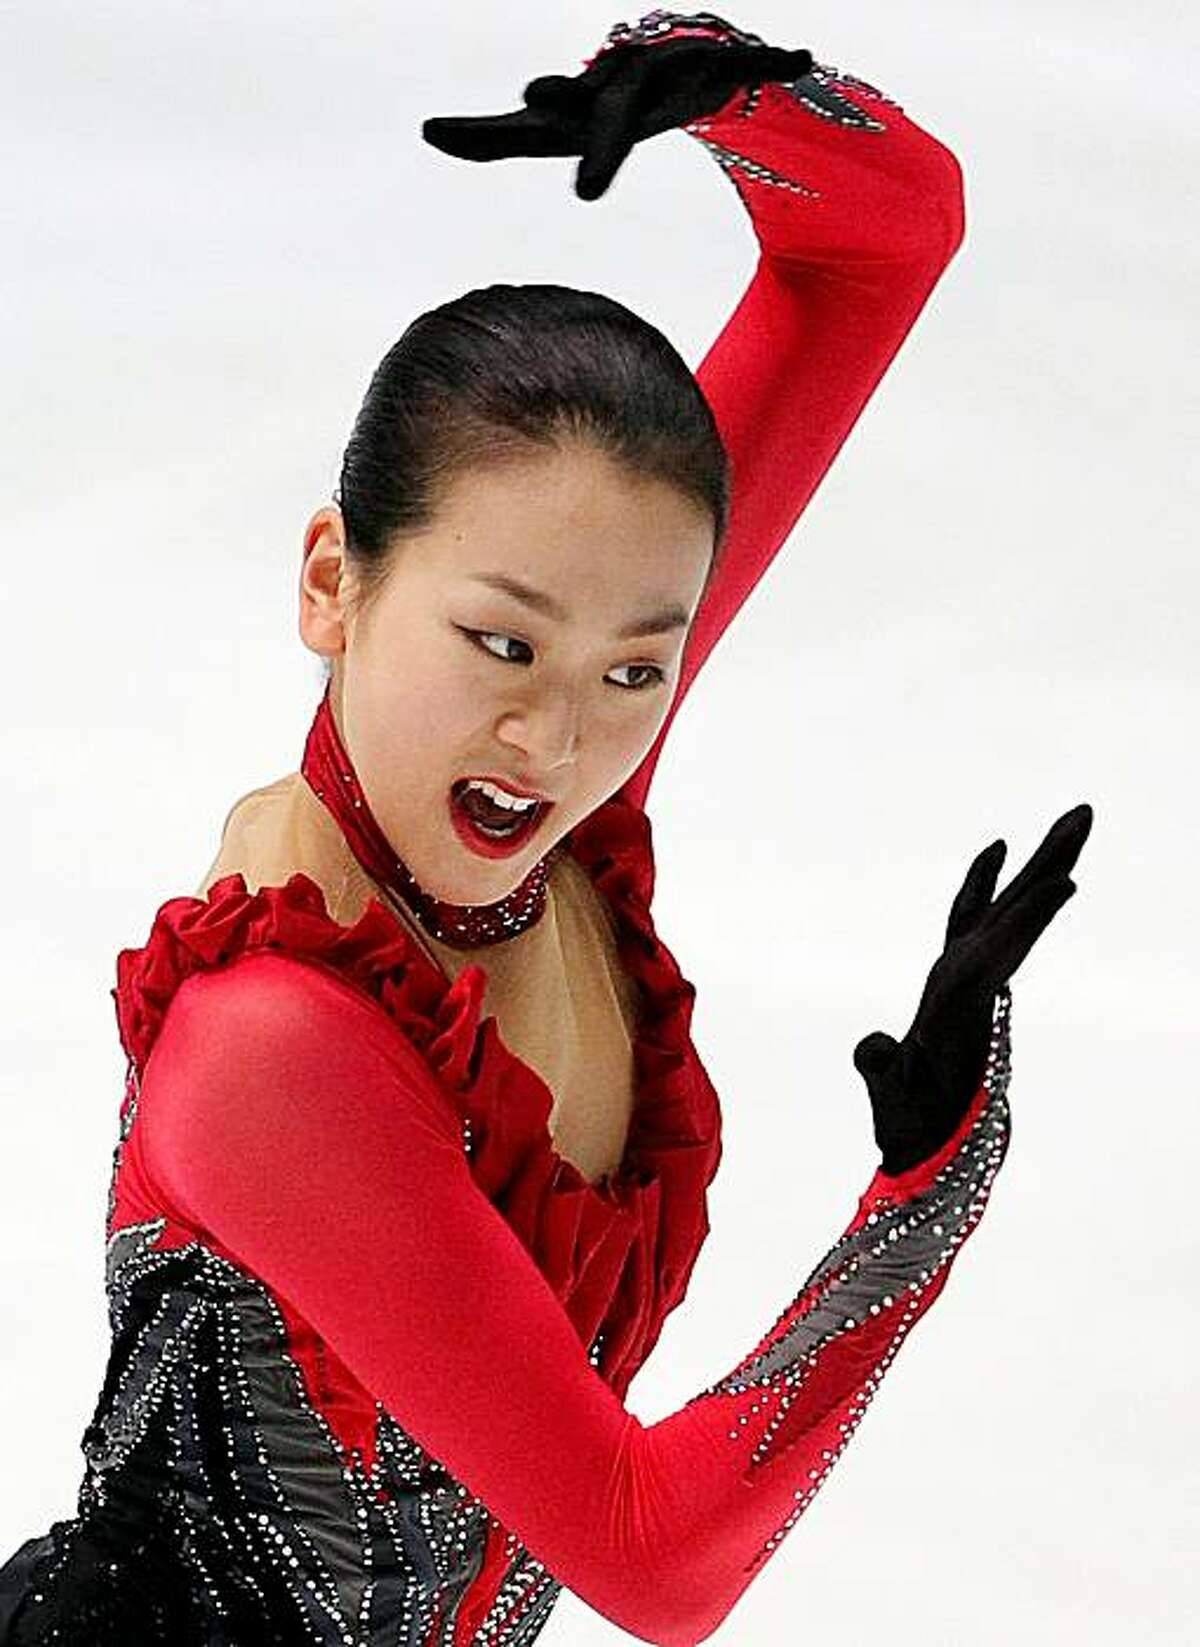 Mao Asada of Japan performs on her way to winning the gold medal during the ladies free skating event at the Japan National Figure Skating Championships in Osaka, western Japan, Sunday, Dec. 27, 2009.